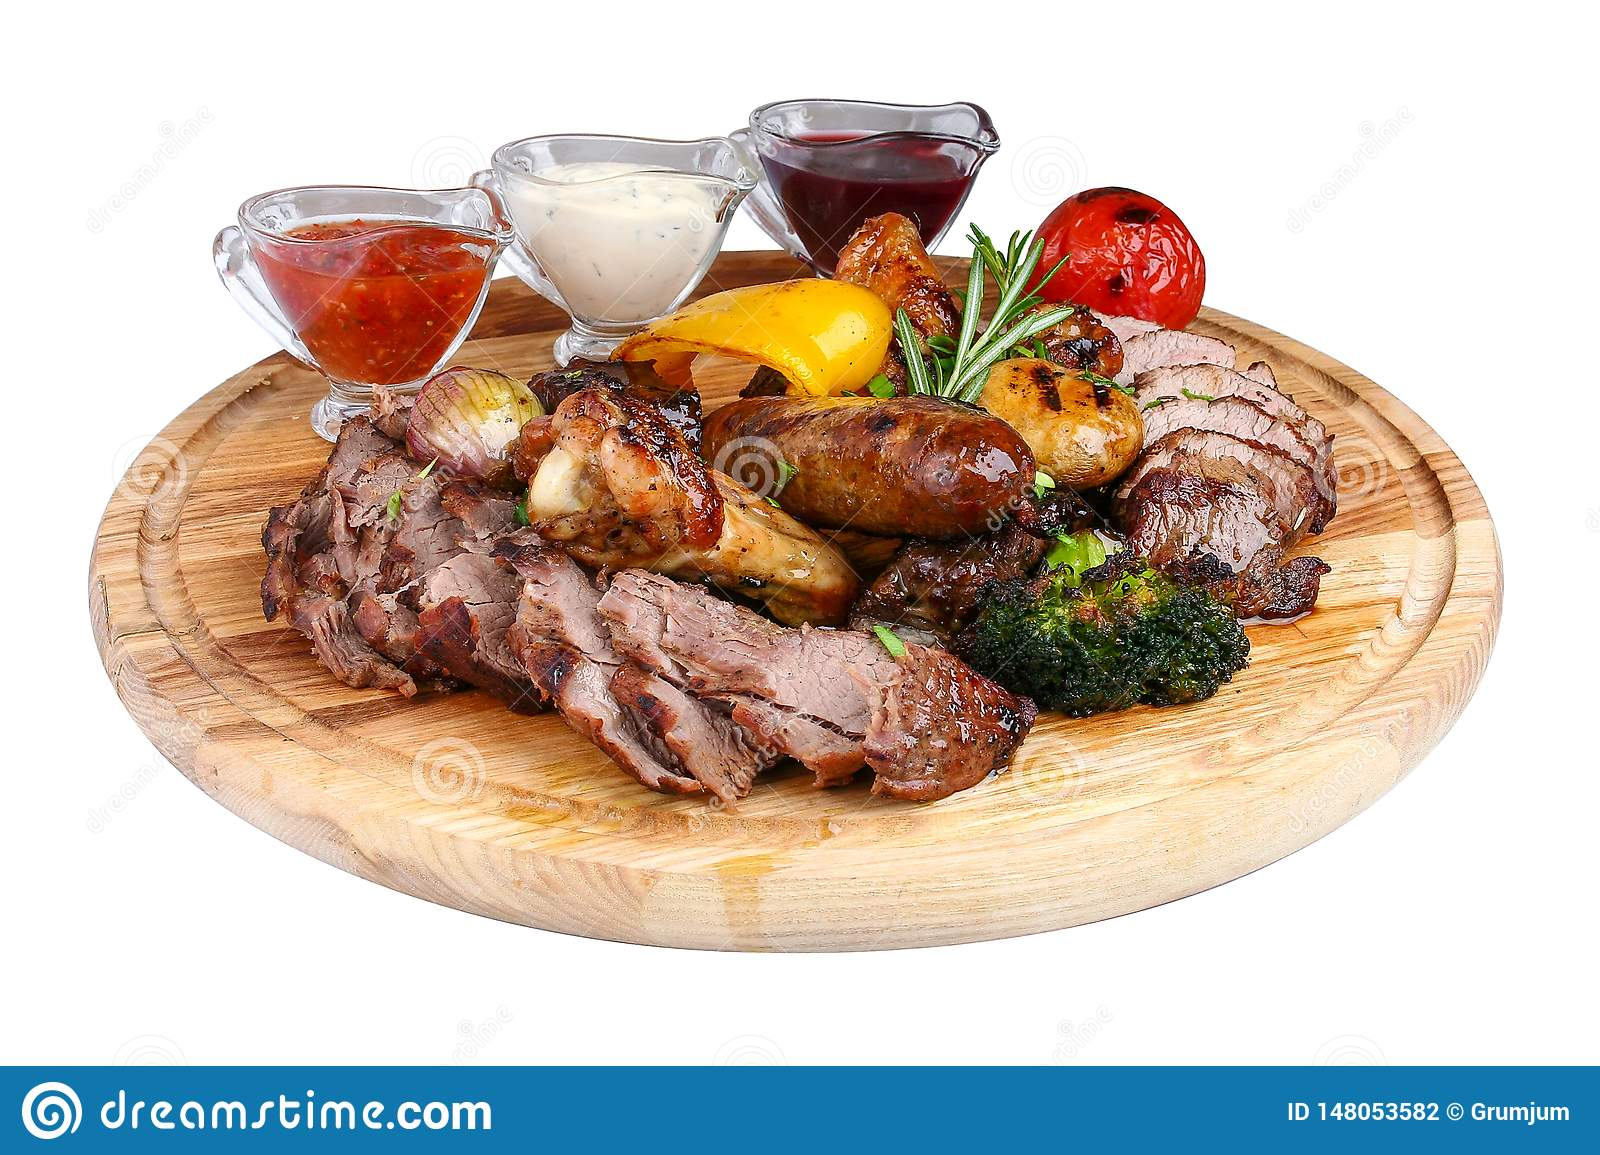 Assorted grilled meat with baked vegetables on a wooden board